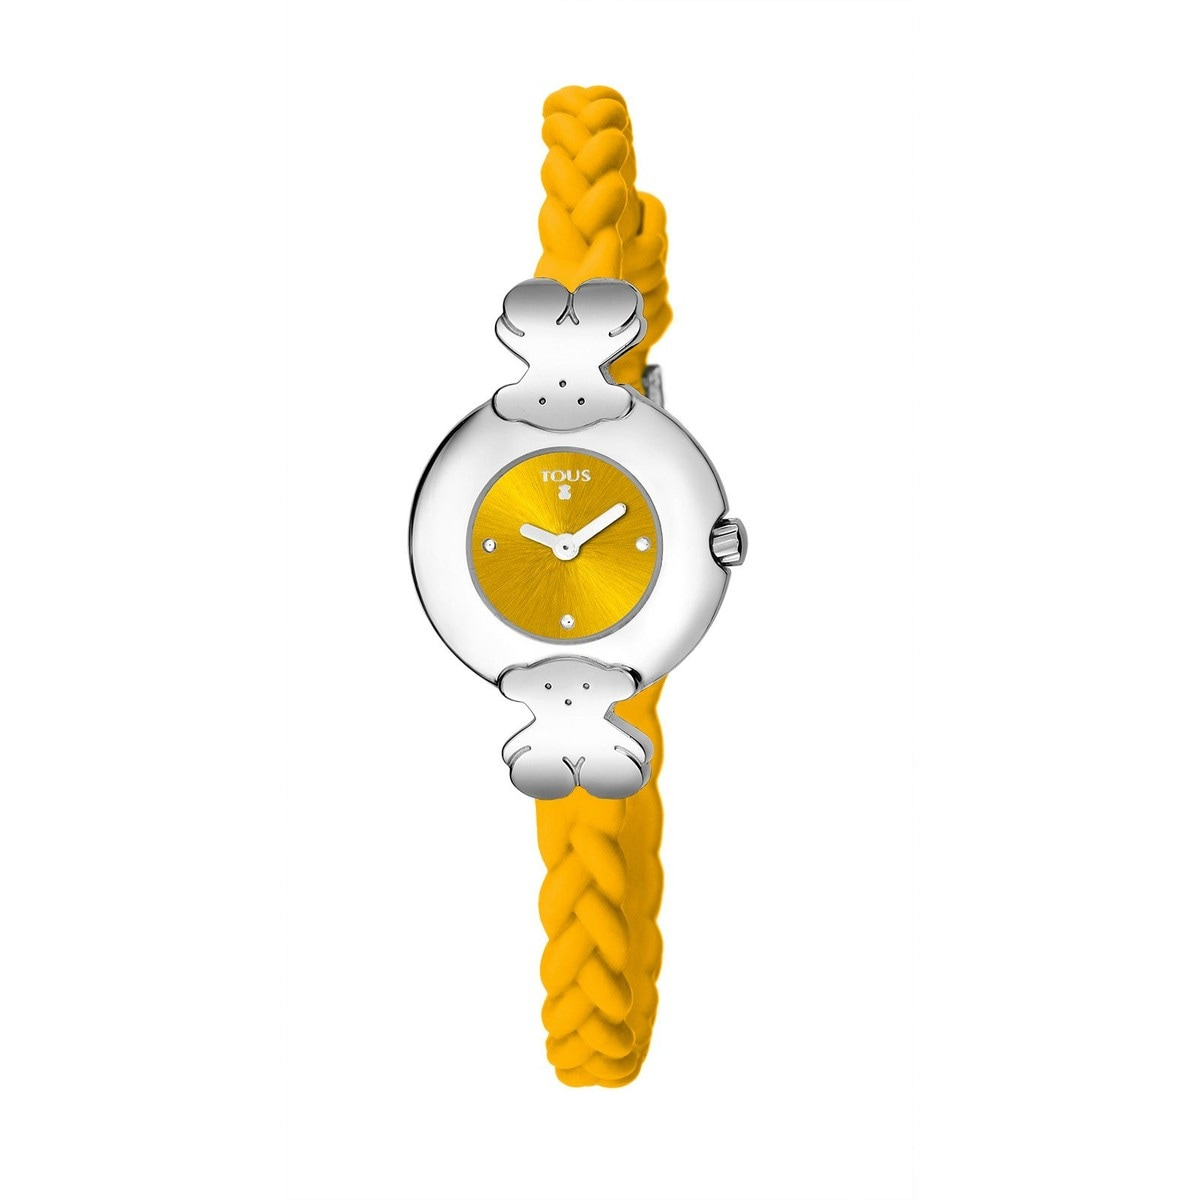 Steel Très Chic Watch with banana colored Silicone strap